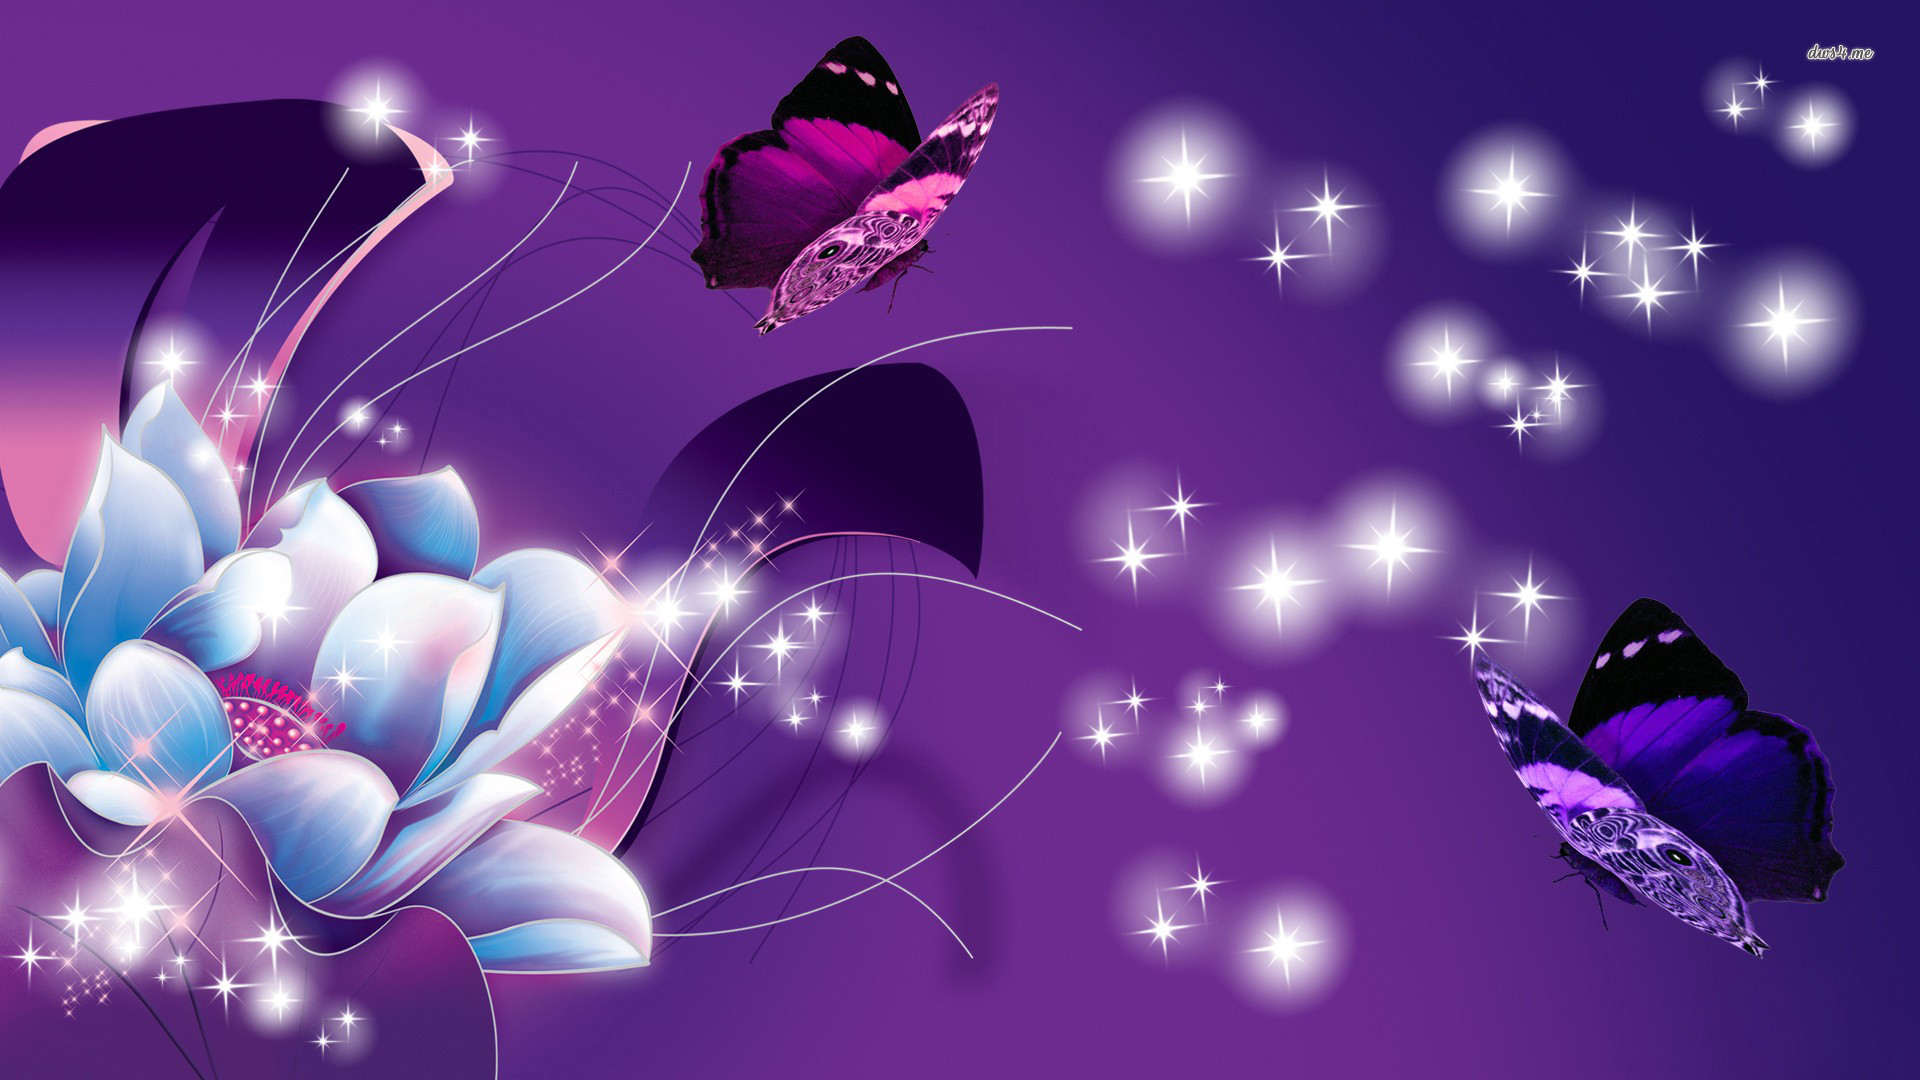 Purple Wallpapers 12 Best Wallpapers Collection Desktop: Purple Butterfly Backgrounds (55+ Images